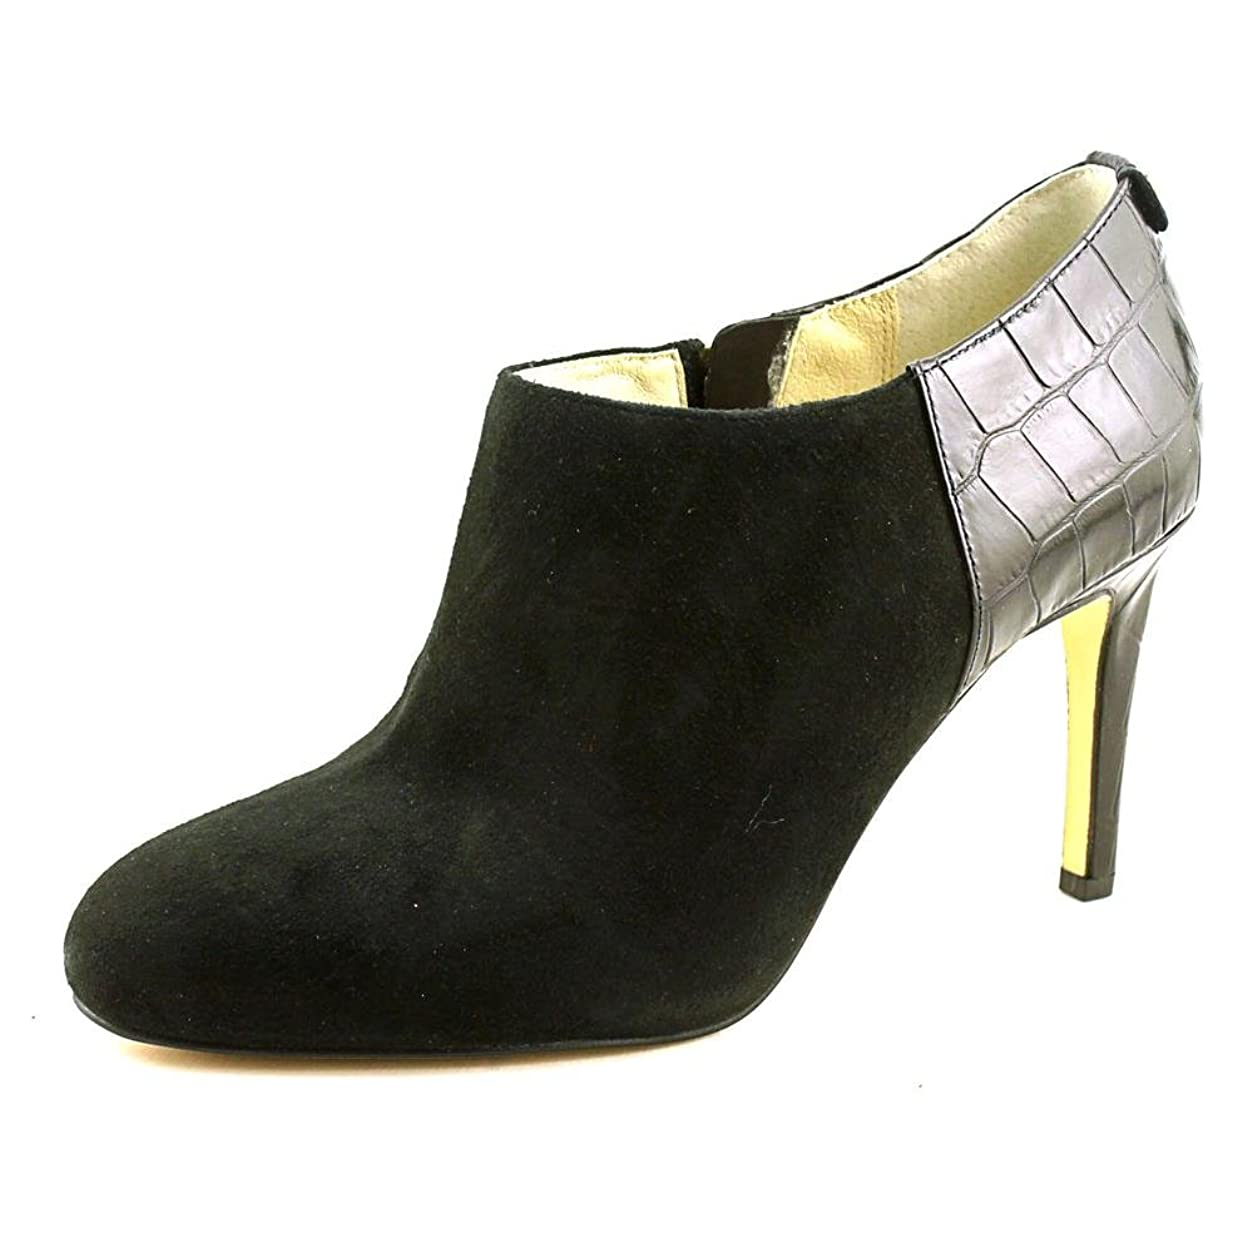 言い直す不明瞭ゲームMichael Kors Womens Sammy Ankle Boot Almond Toe Leather Fashion Boots, Black, Size 5